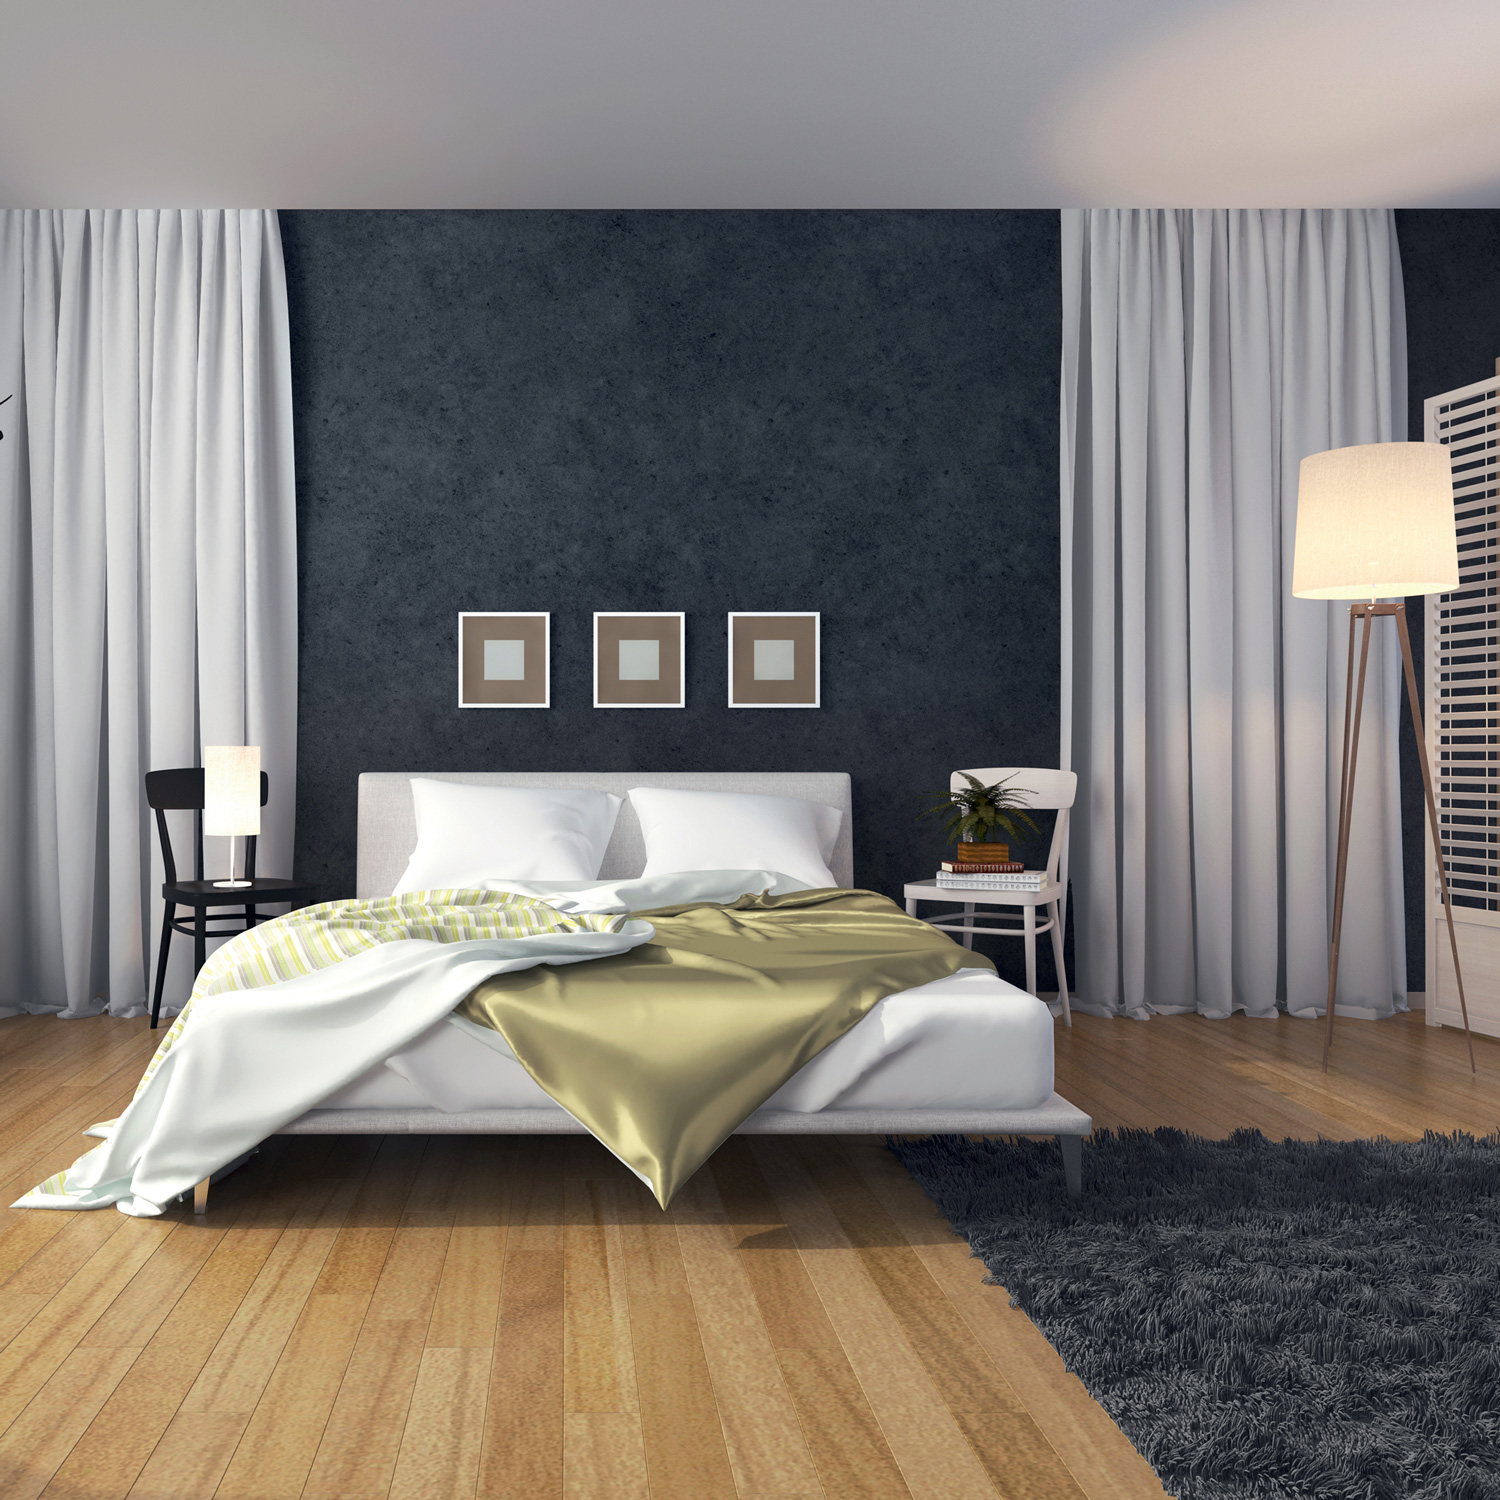 Boero USA paint finish, metallic grit featured on this bedroom wall